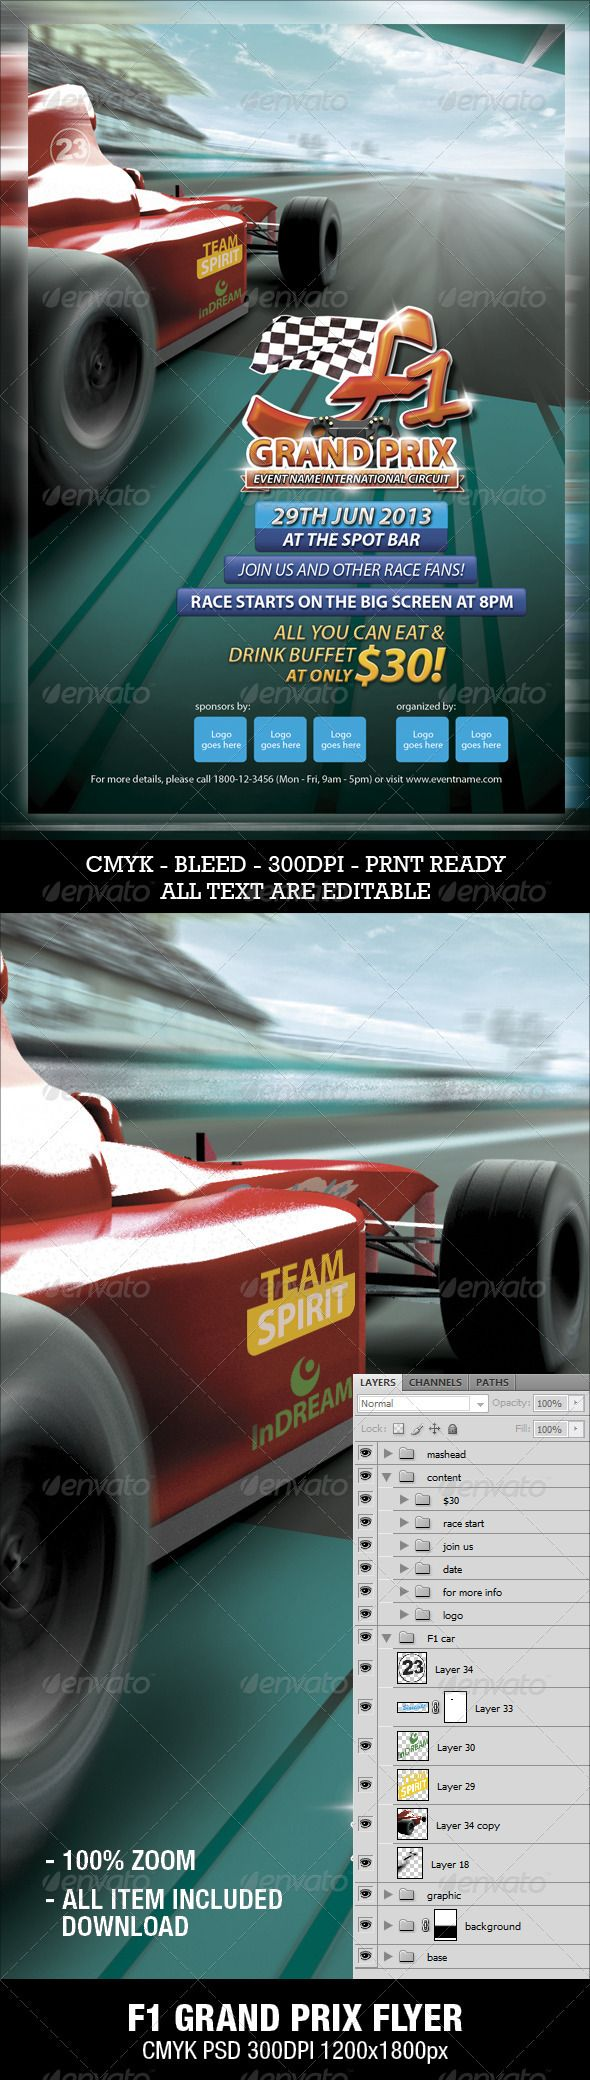 F1 Grand Prix Flyer  #chequered flag #steering • Click here to download ! http://graphicriver.net/item/f1-grand-prix-flyer/3286111?ref=pxcr